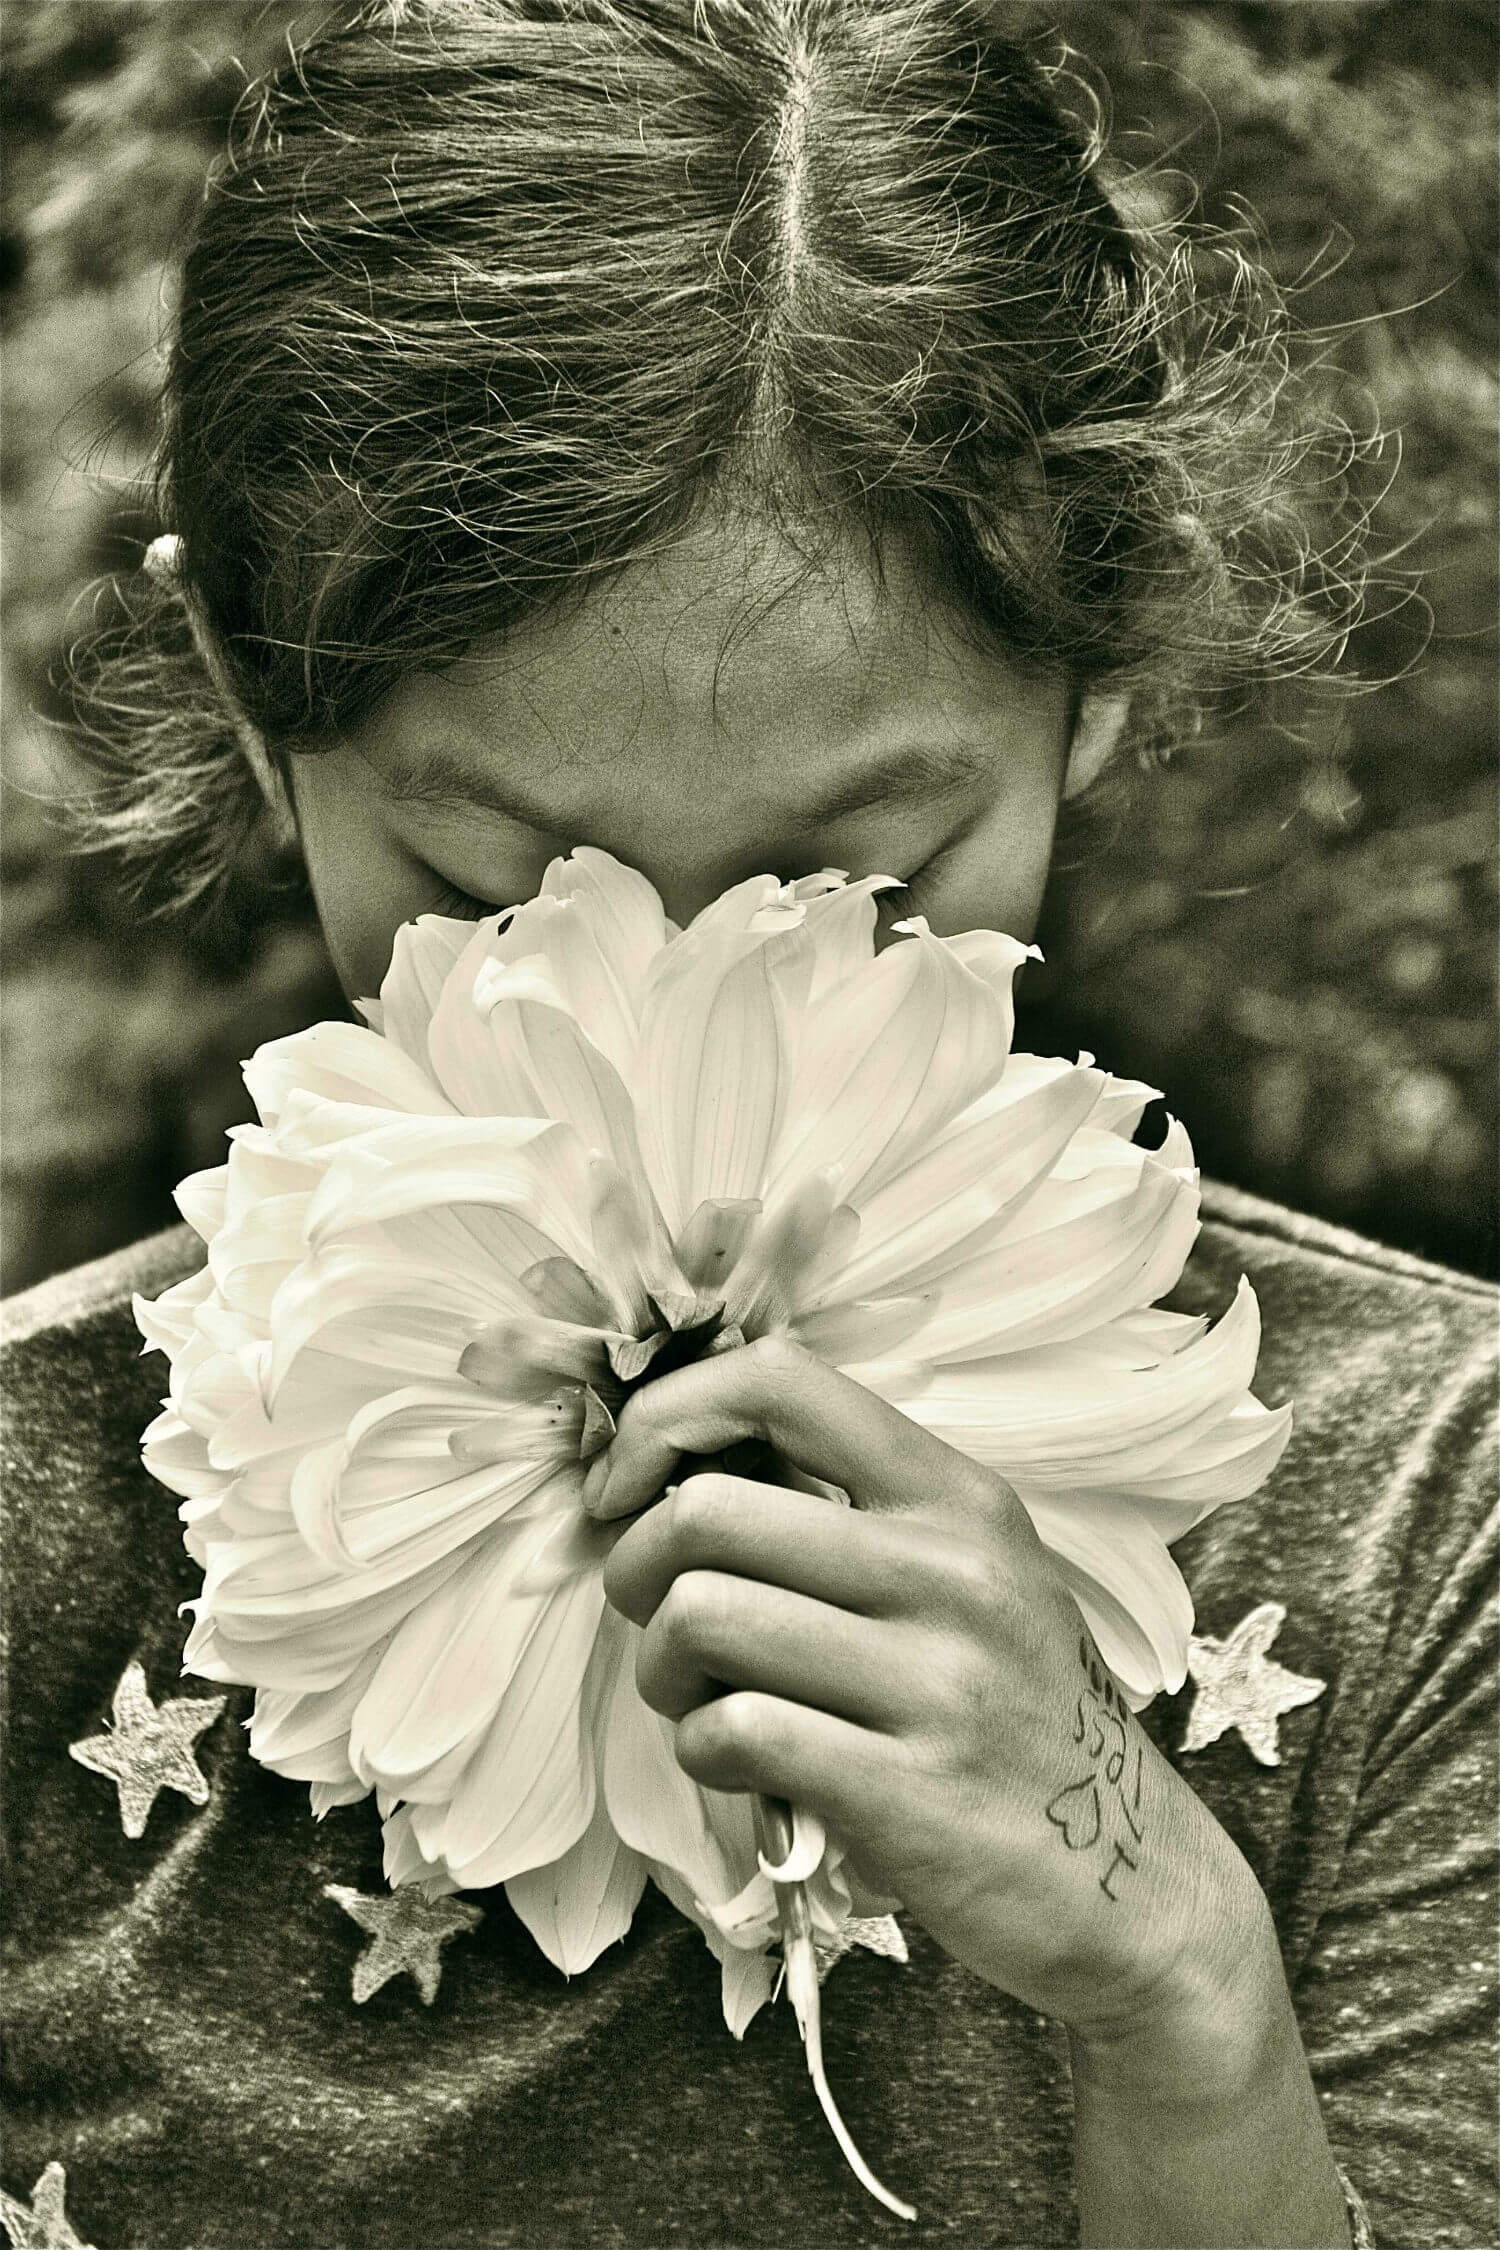 "I love Tess, 11"" x 16"" girl smelling flower liz fiedorek fine art photography ny rhode island"